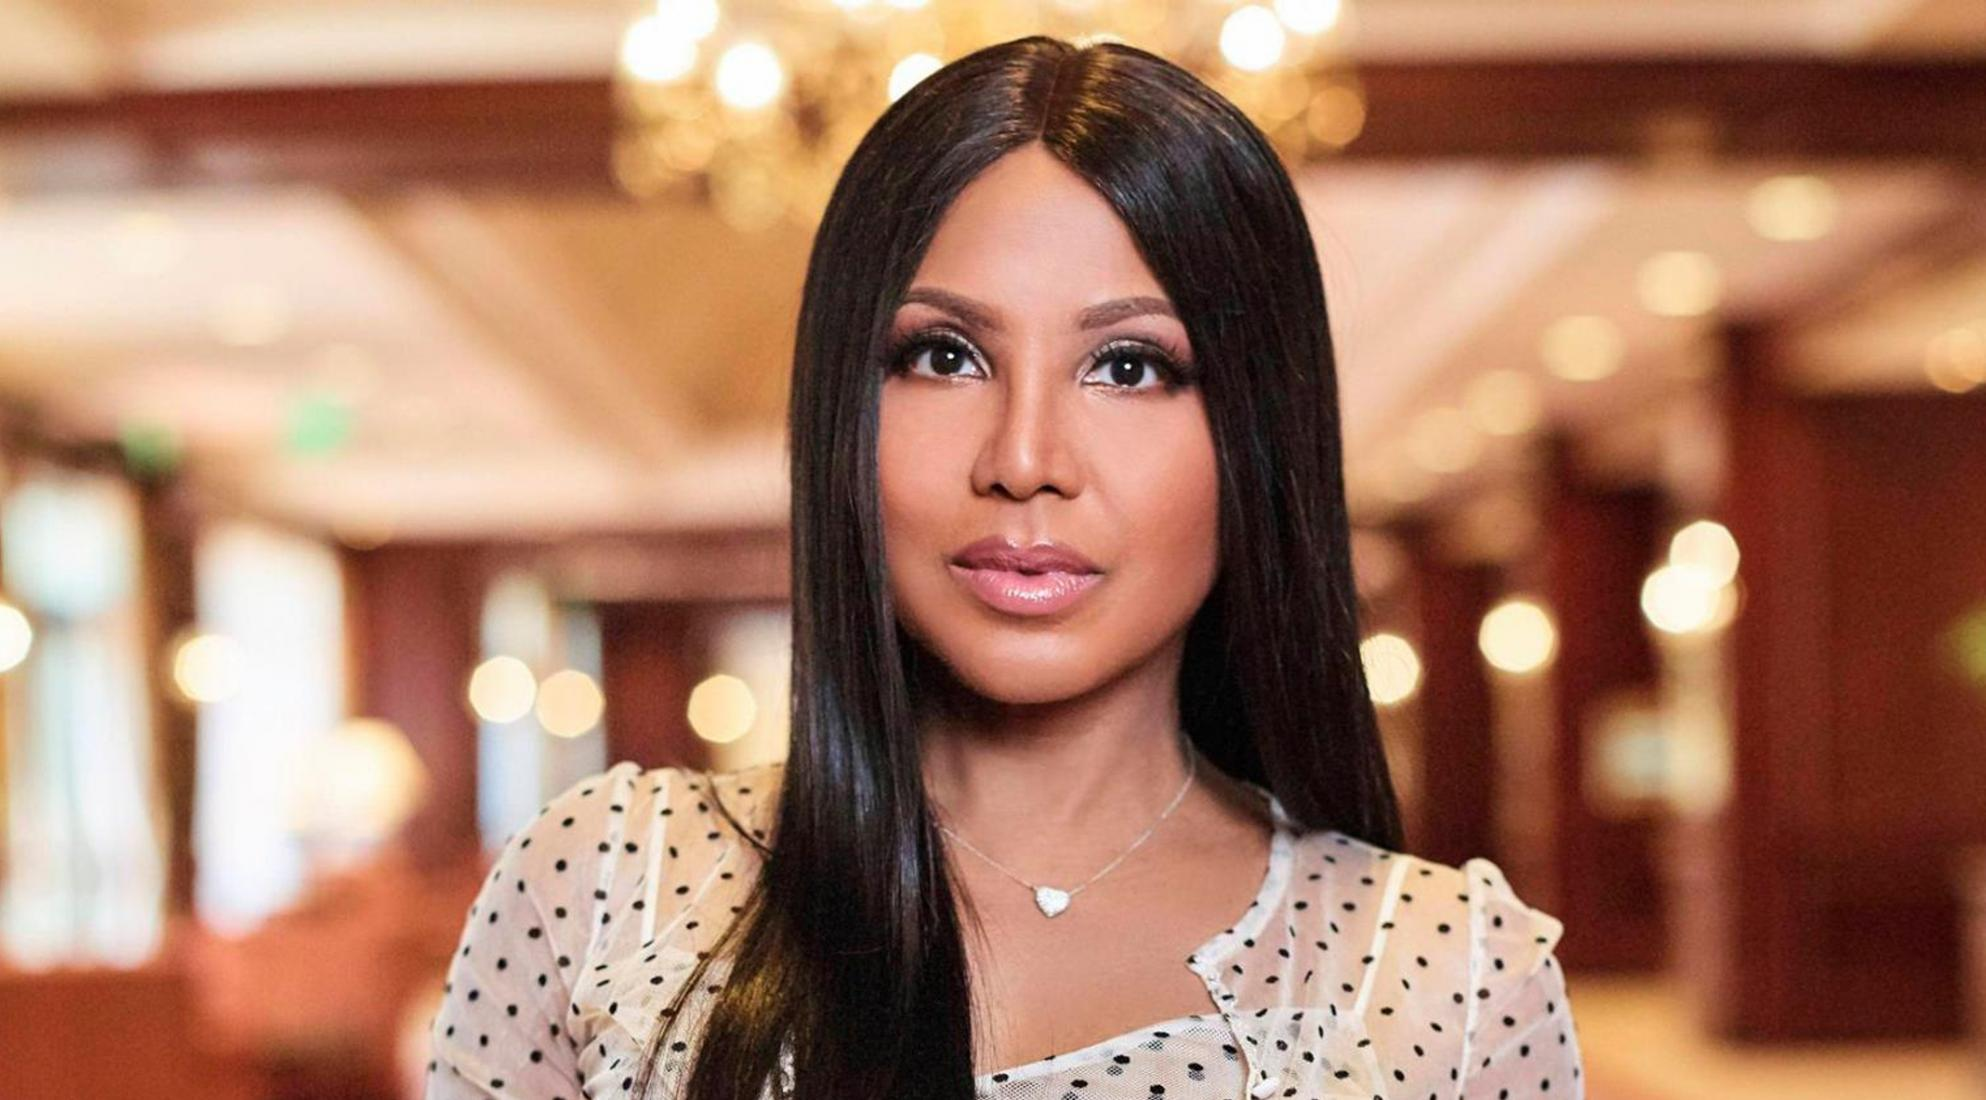 """toni-braxton-has-some-goodies-for-her-fans-check-out-her-recent-video"""